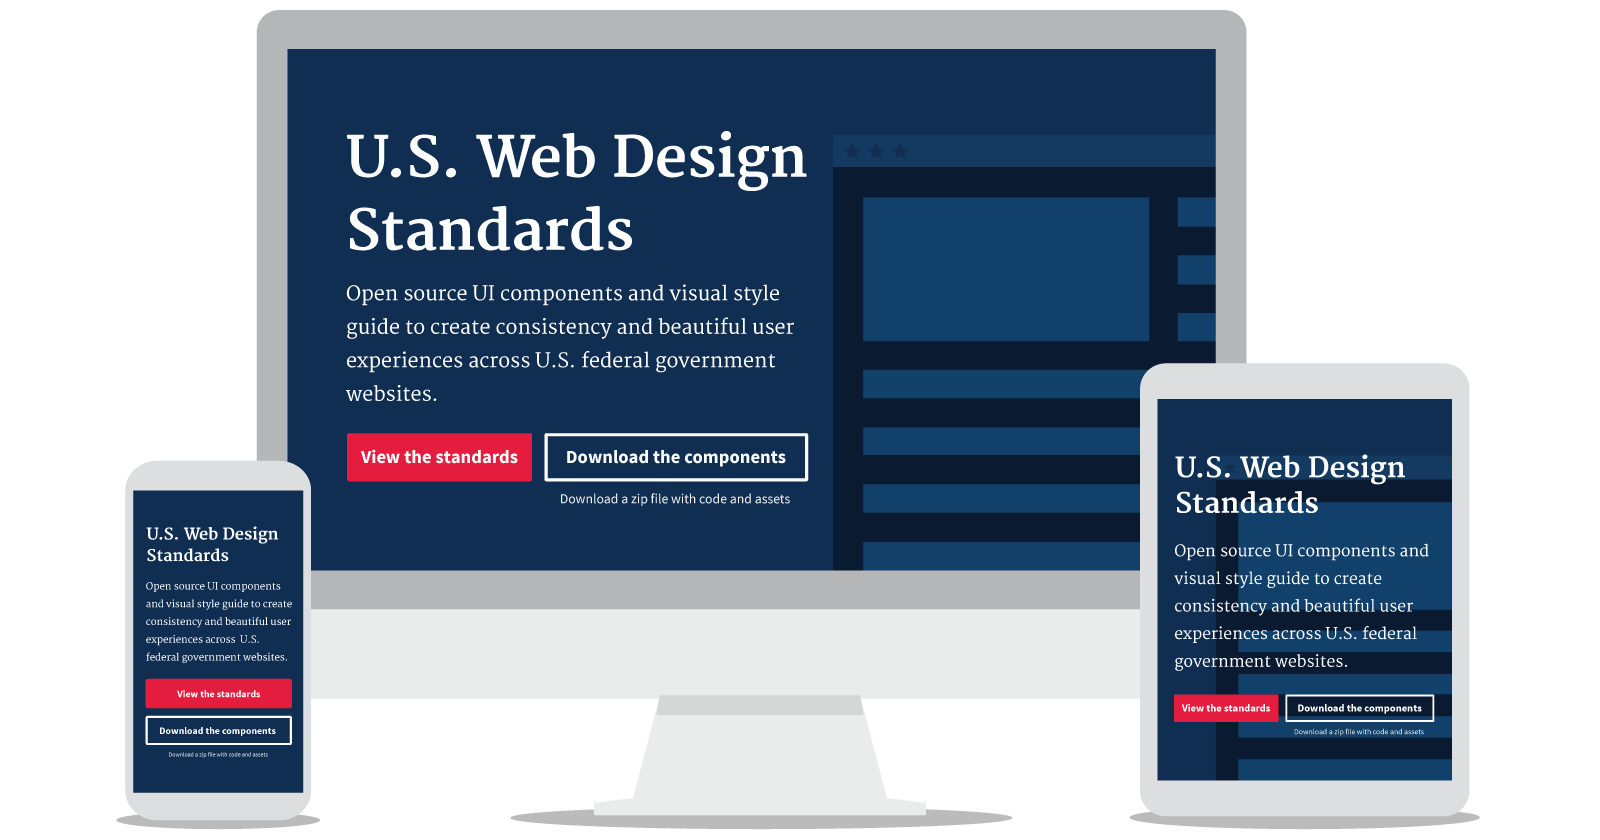 18F — Introducing the U.S. Web Design Standards